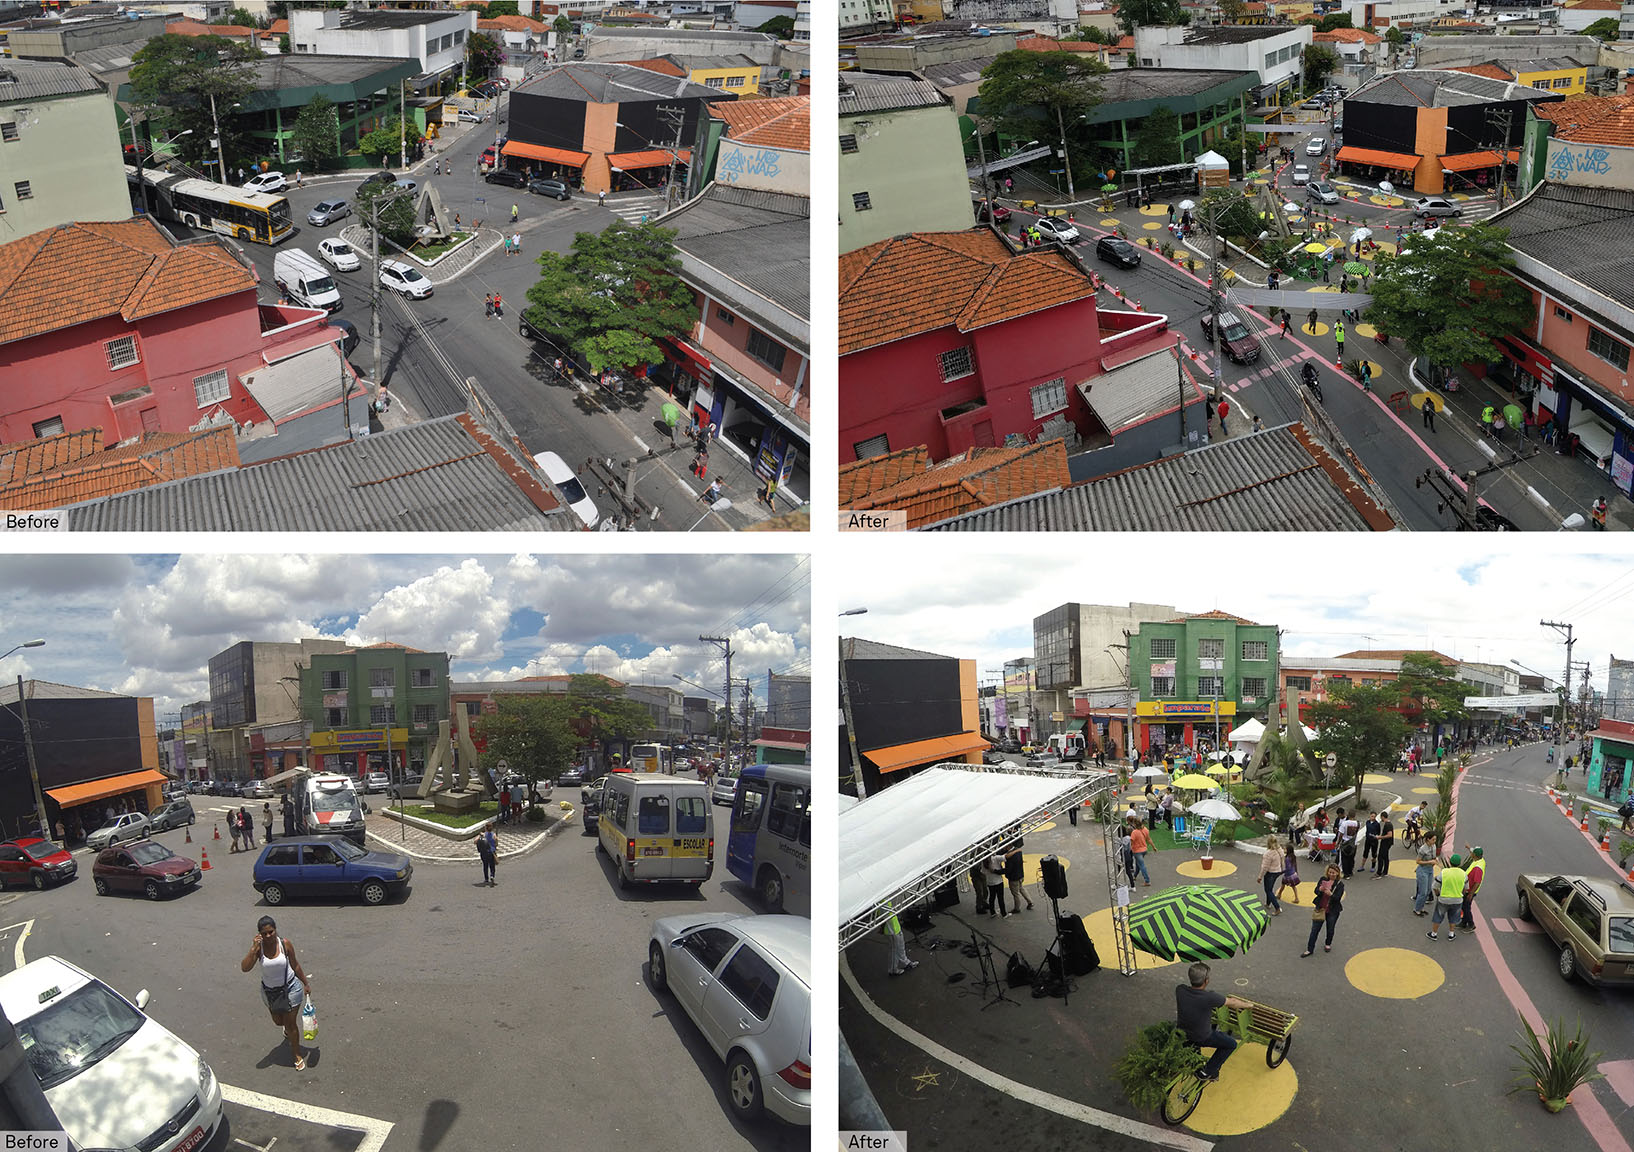 A glimpse of the pop-up transformation event organized by NACTO, under BIGRS, in Sao Miquel, São Paulo in November 2016